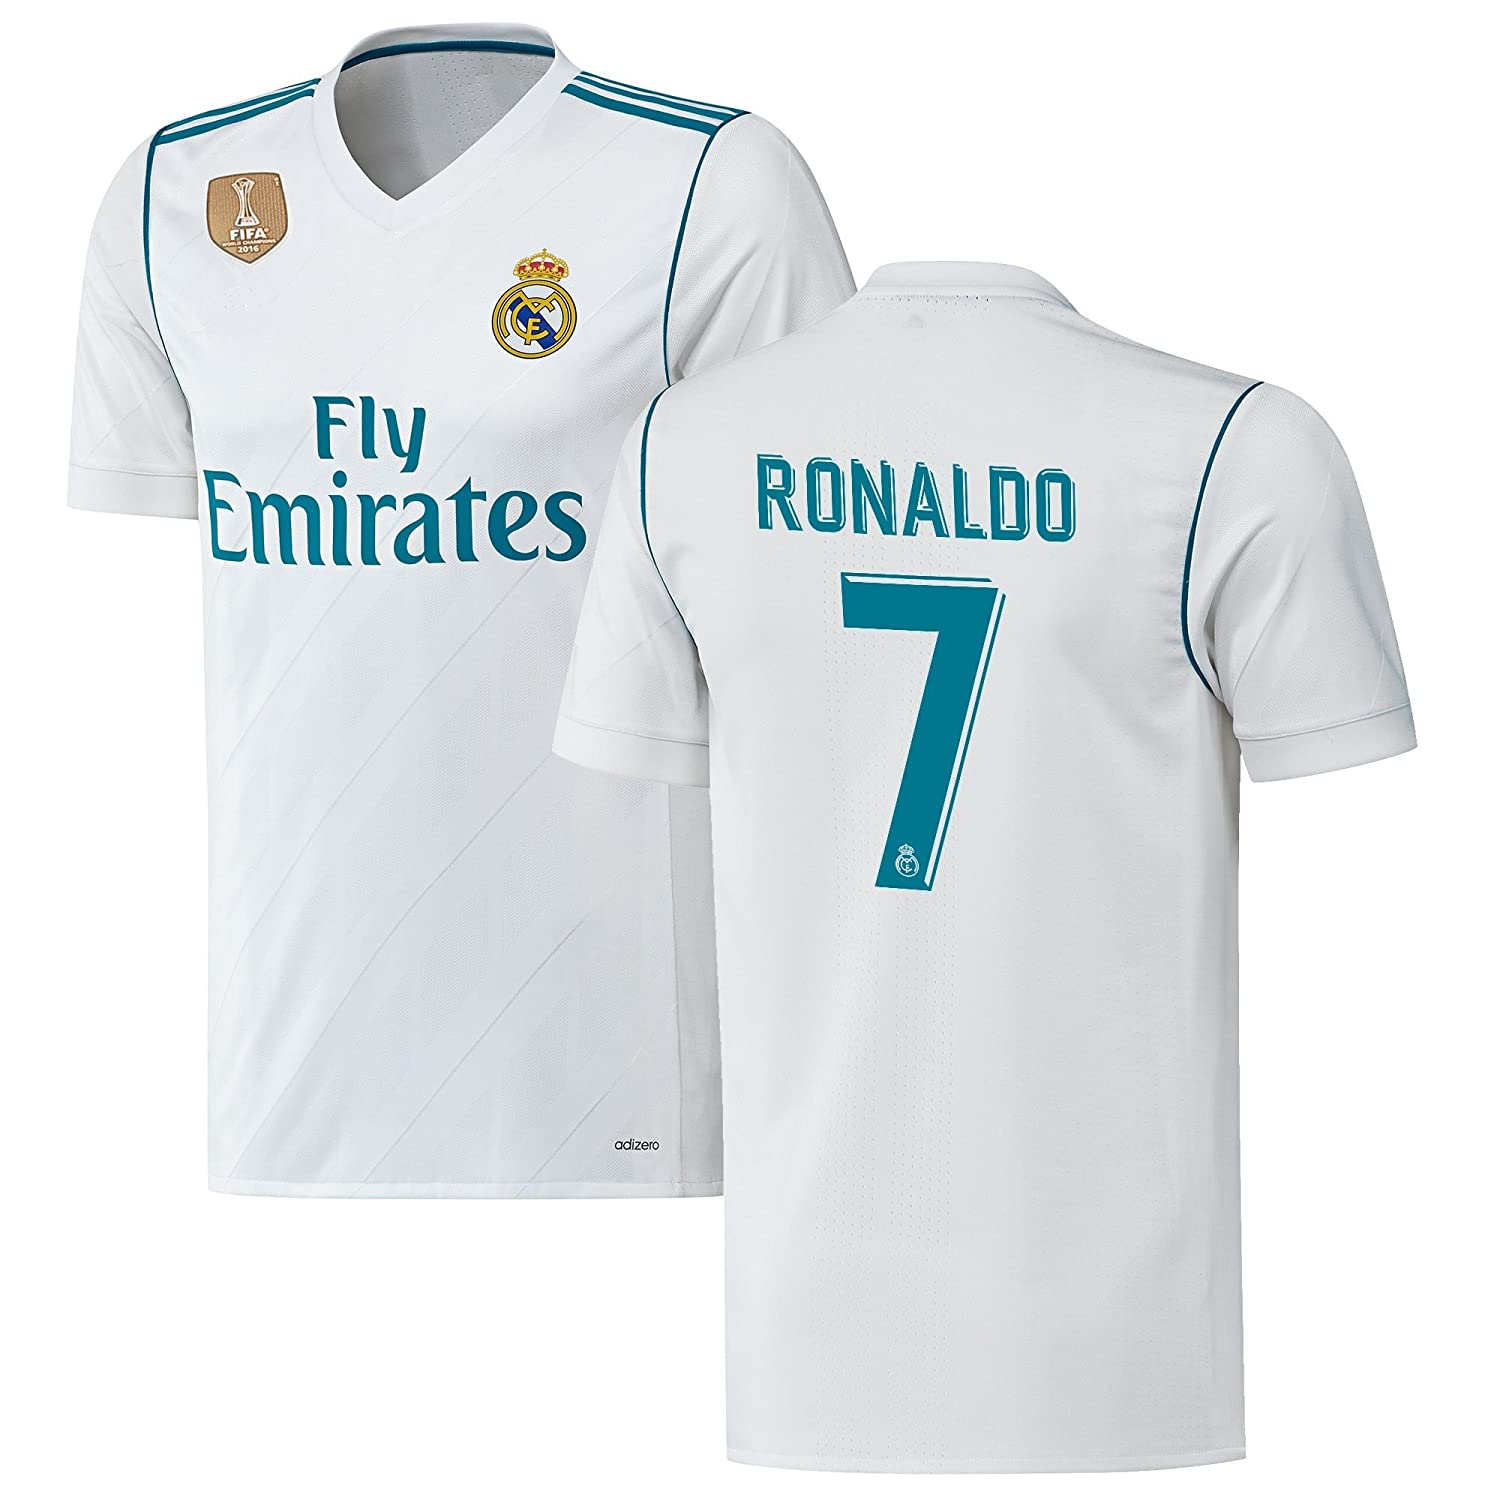 new arrival 582db 0a5b6 Buy Cristiano Ronaldo Jersey for Men - Real Madrid #7 CR7 ...